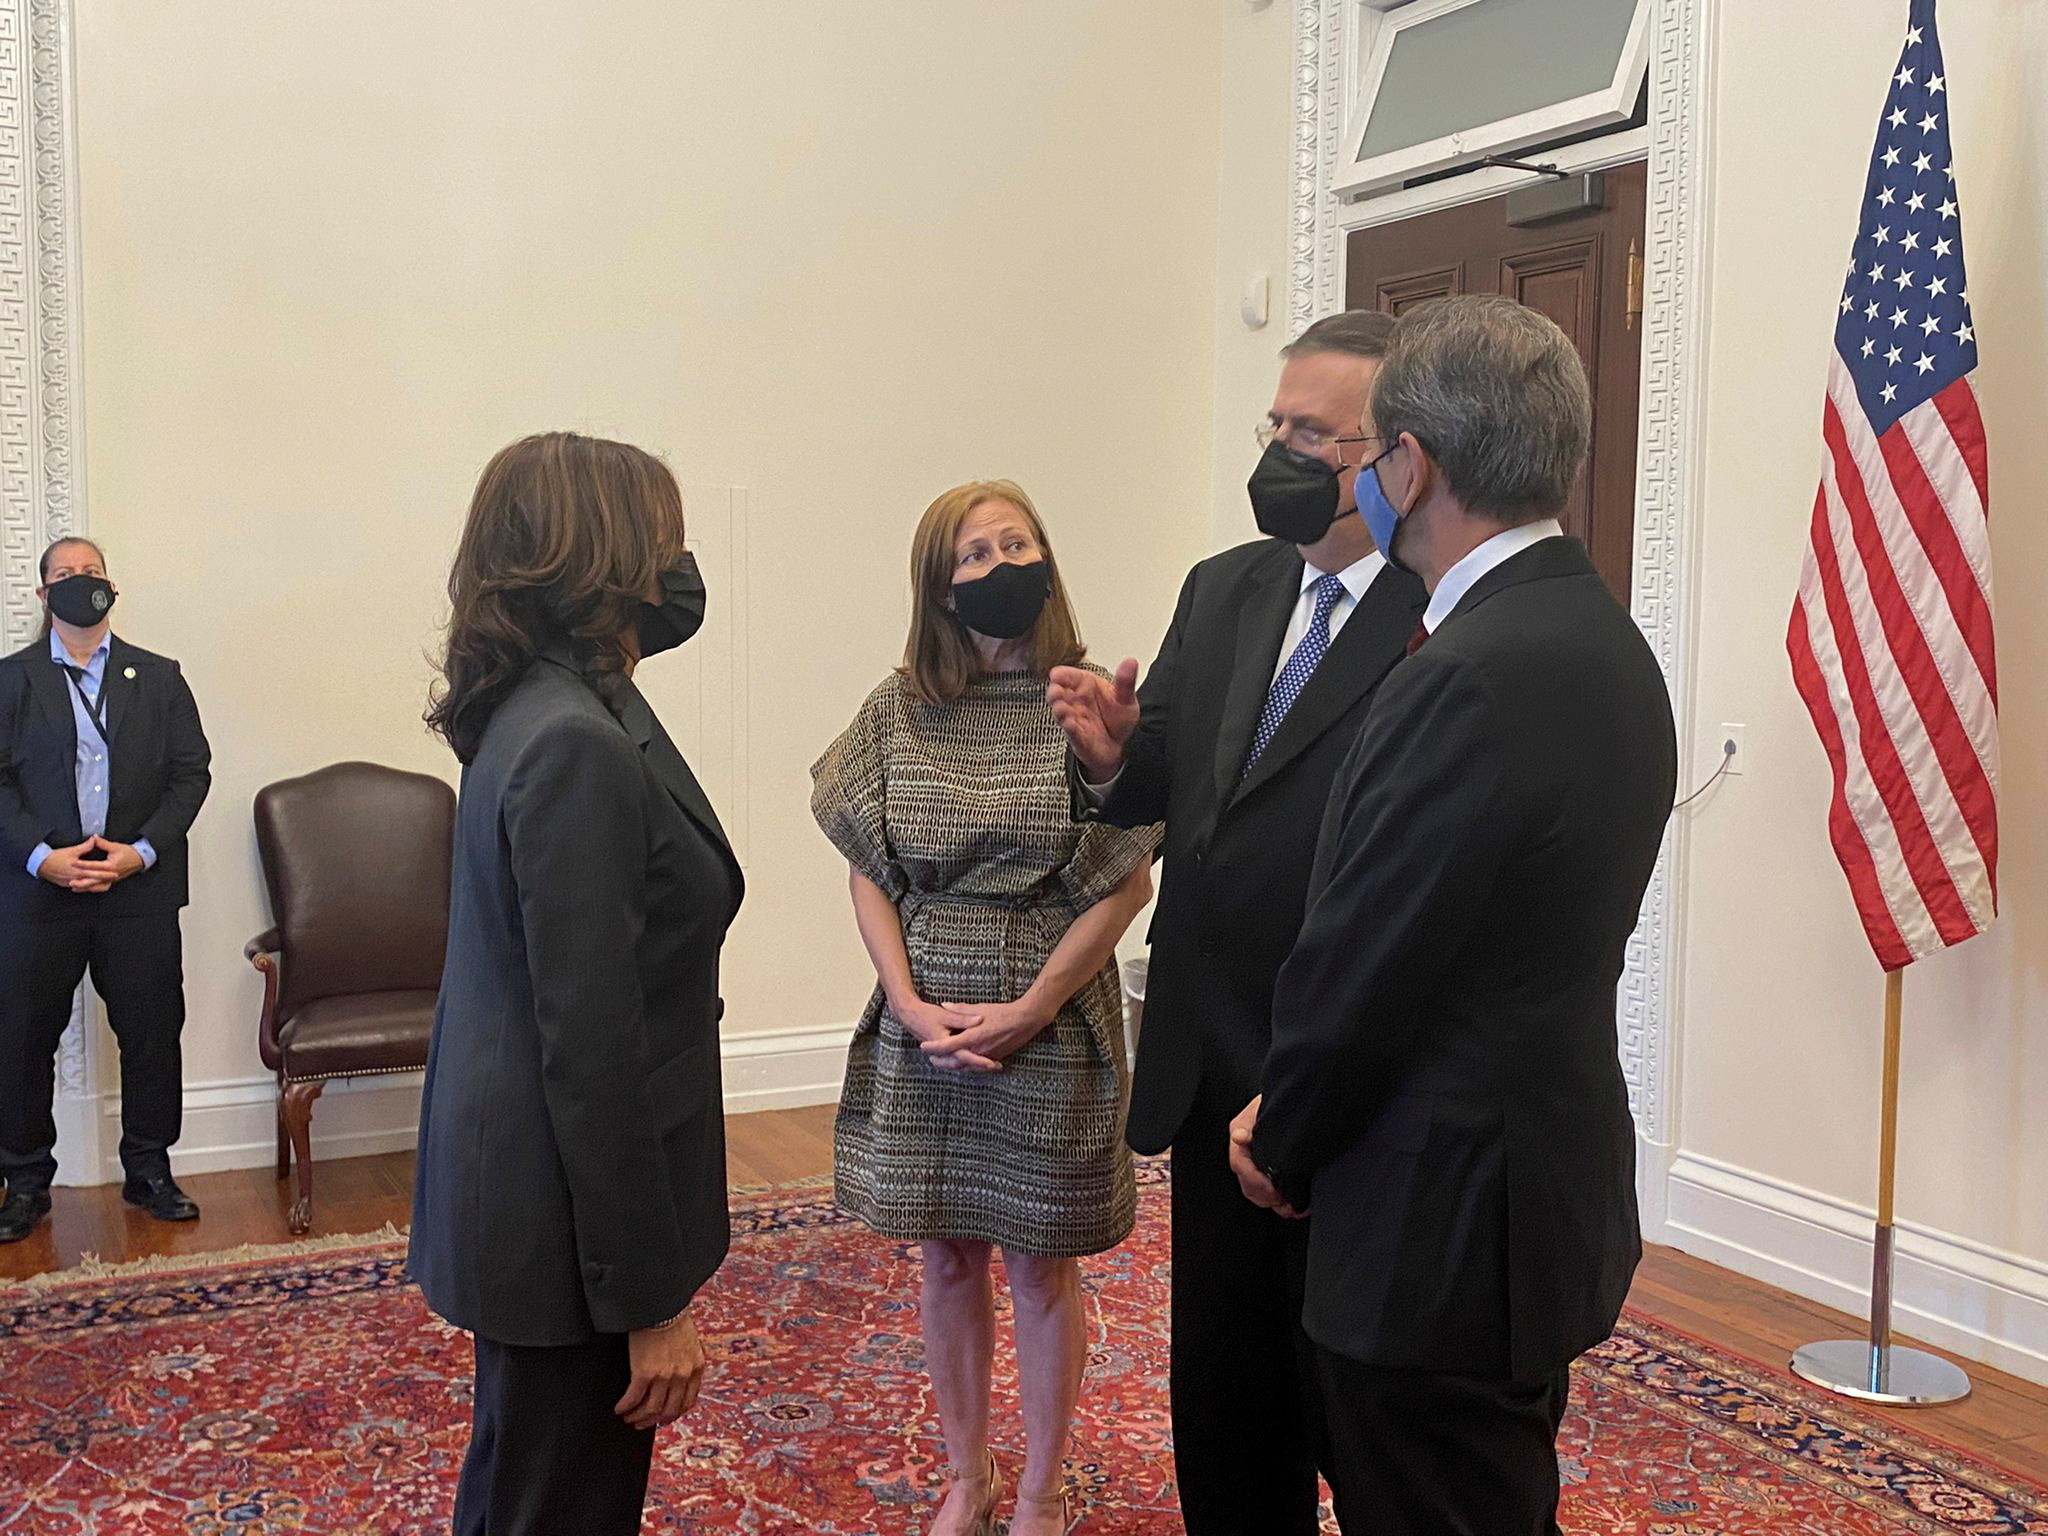 Mexican Foreign Minister Marcelo Ebrard chats with U.S. Vice President Kamala Harris, U.S. Secretary of State Anthony Blinken and Mexican Economy Minister Tatiana Clouthier before the so-called High-Level Economic Dialogue (HLED) that seek to pursue economic opportunities beyond the trade issues covered in the new North America trade agreement, in Washington, U.S. September 9, 2021. Mexico's Foreign Relations Ministry/Handout via REUTERS